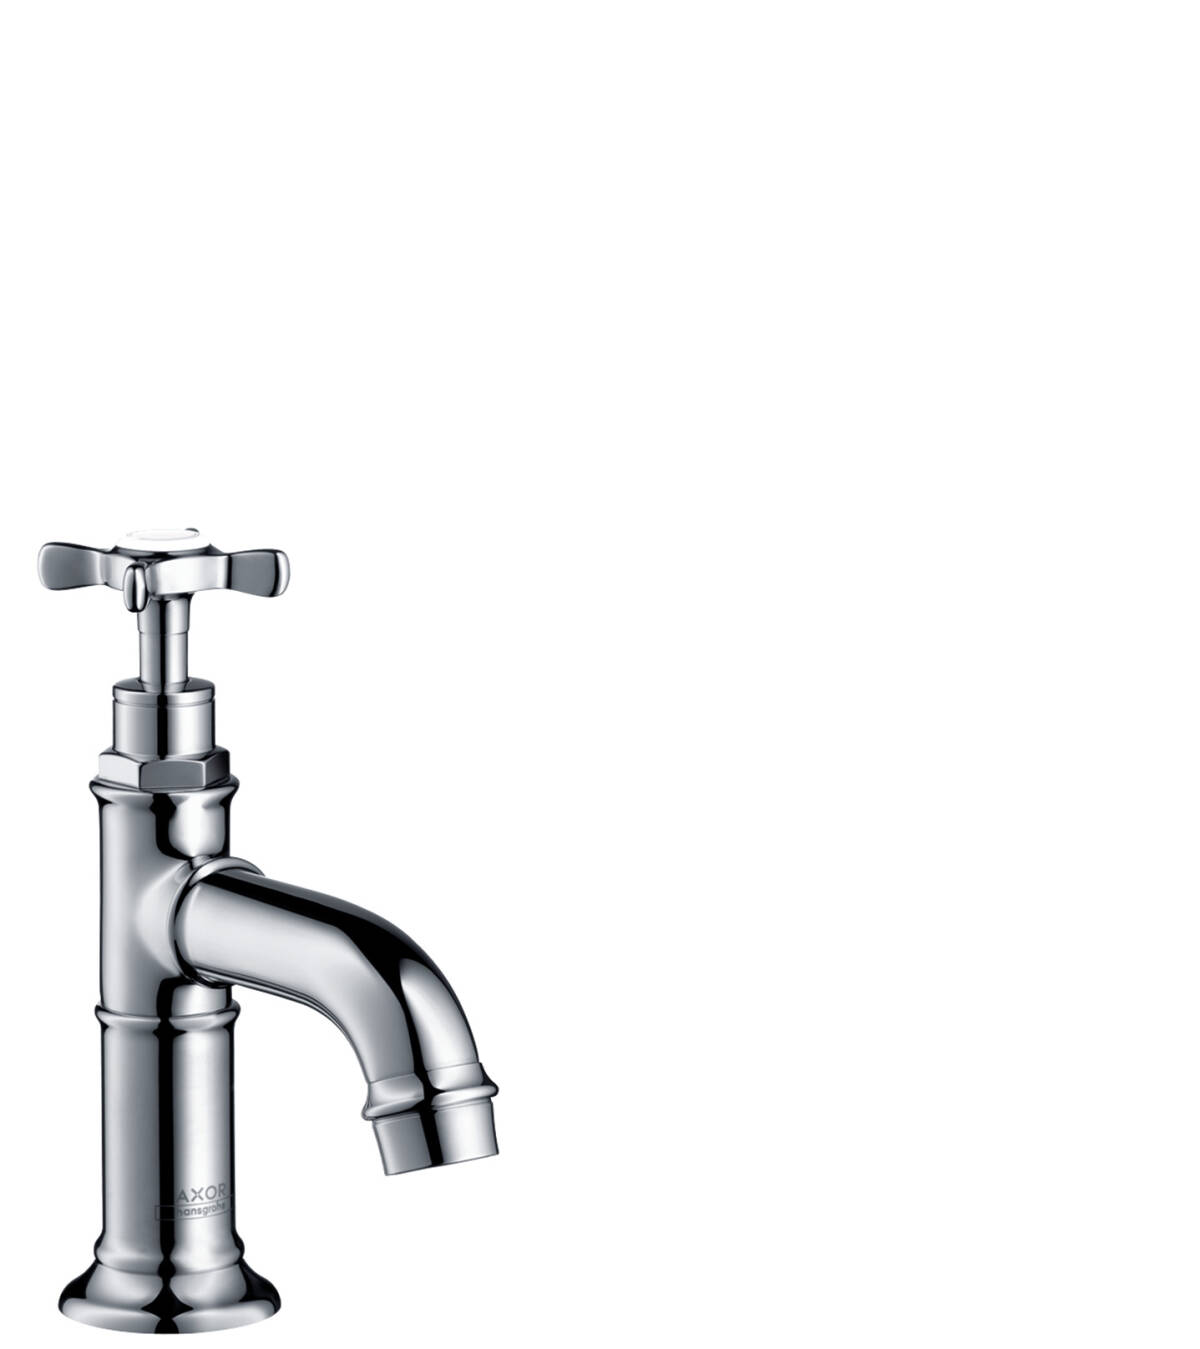 Pillar tap 50 with lever handle without waste set, Chrome, 16530000